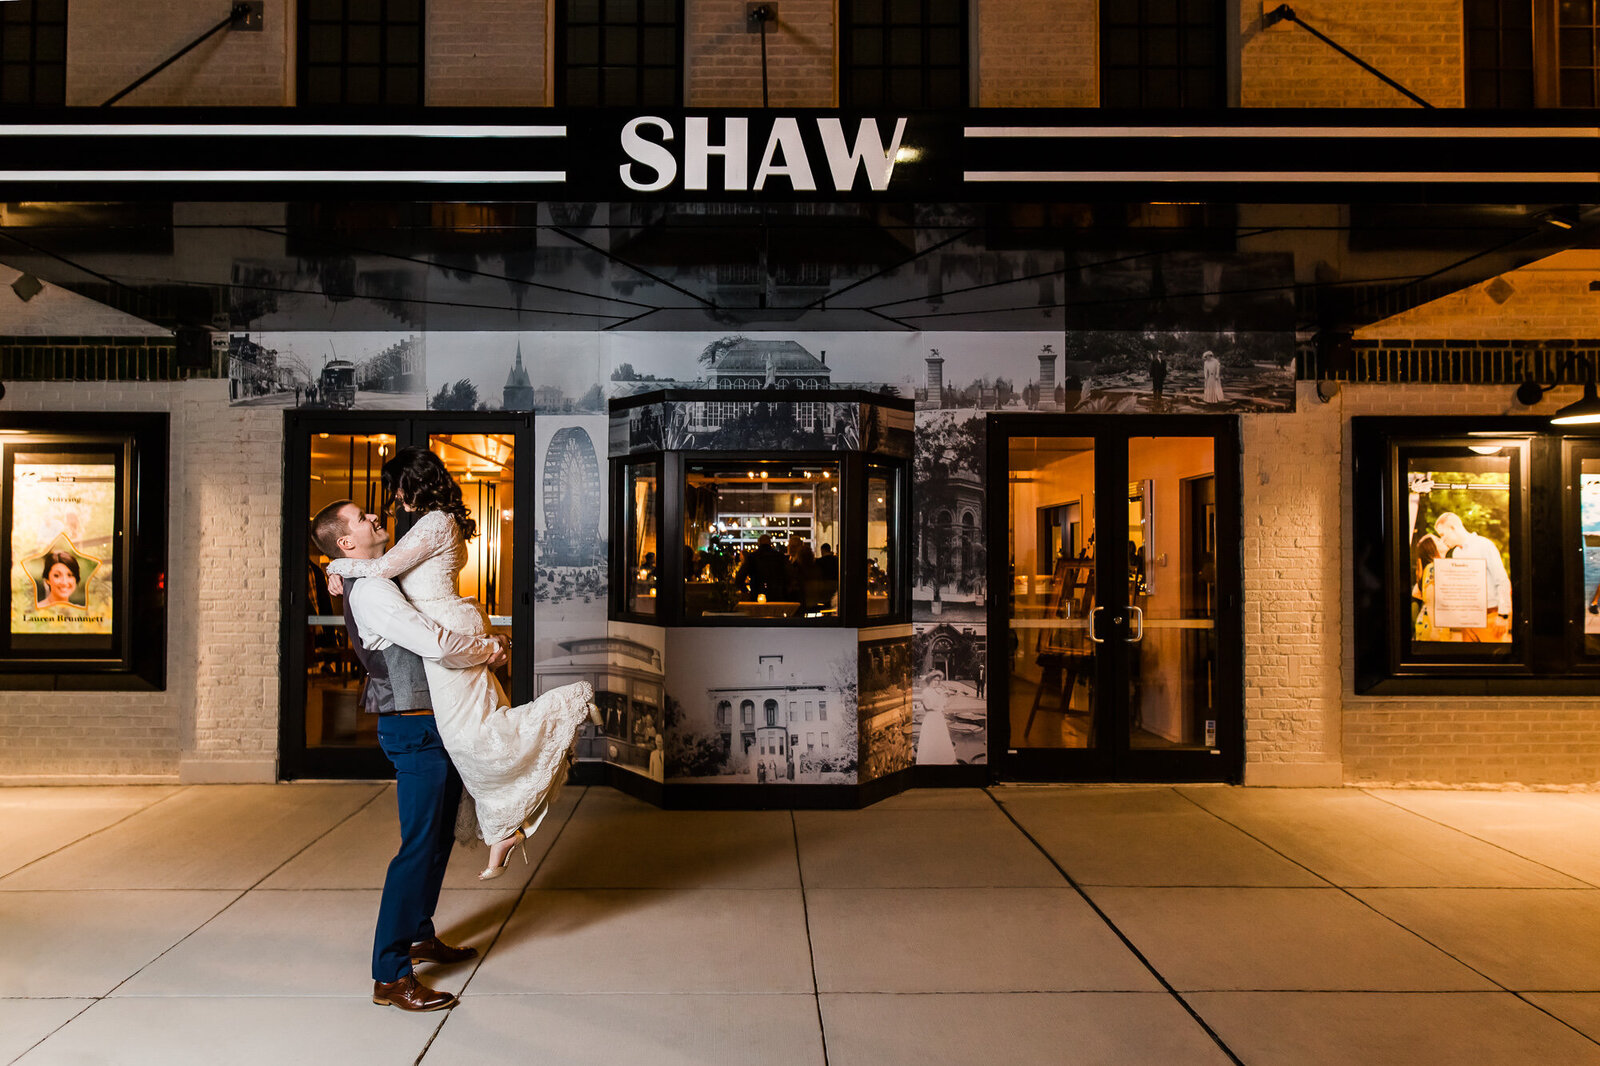 Portrait of a newlywed couple outside at night at Wild Carrot in the Shaw neighborhood in St. Louis